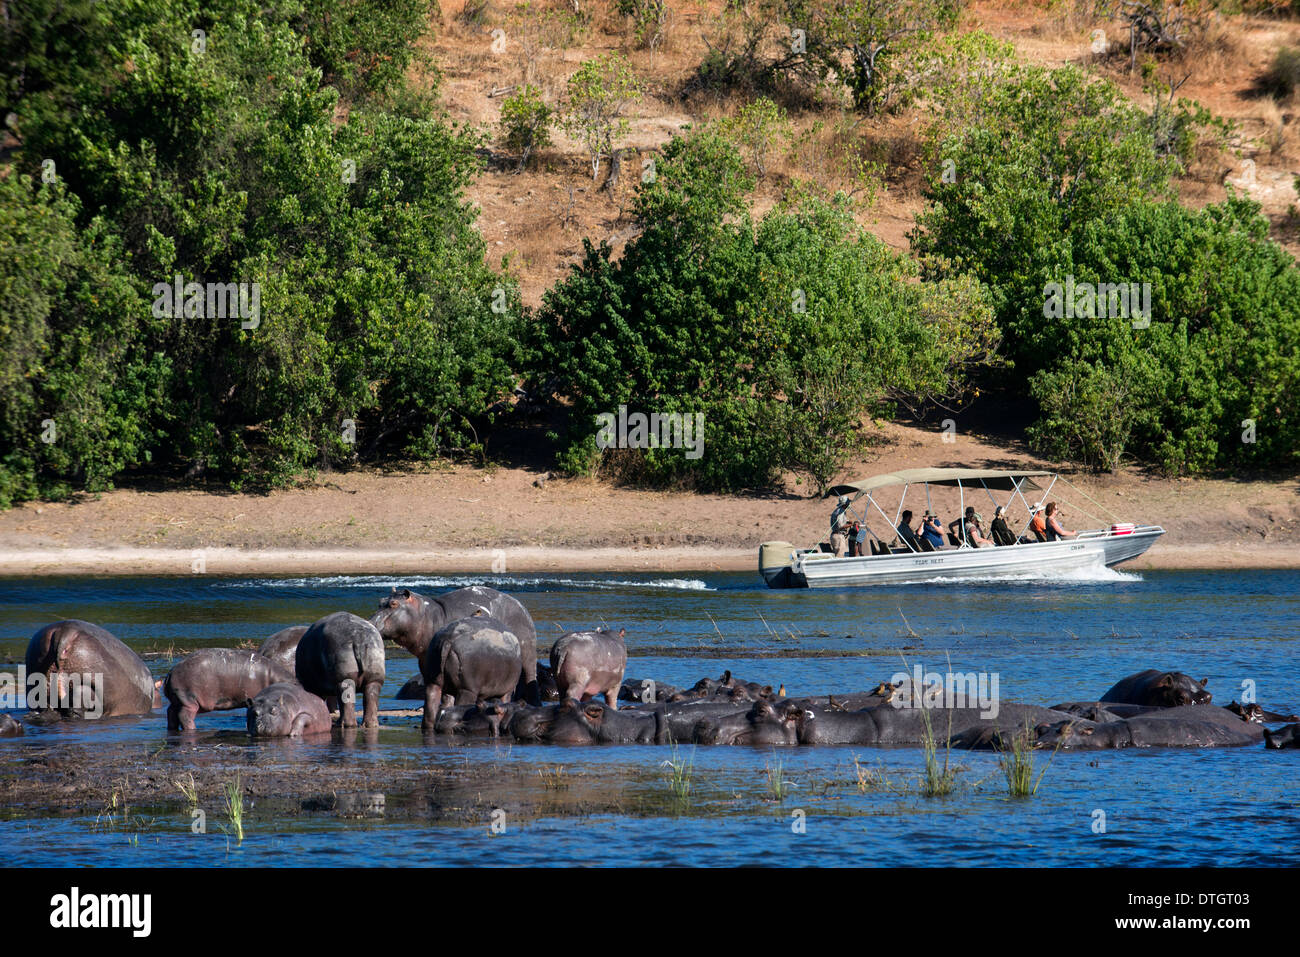 From Victoria Falls is possible to visit the nearby Botswana. Specifically Chobe National Park. Hippos. - Stock Image